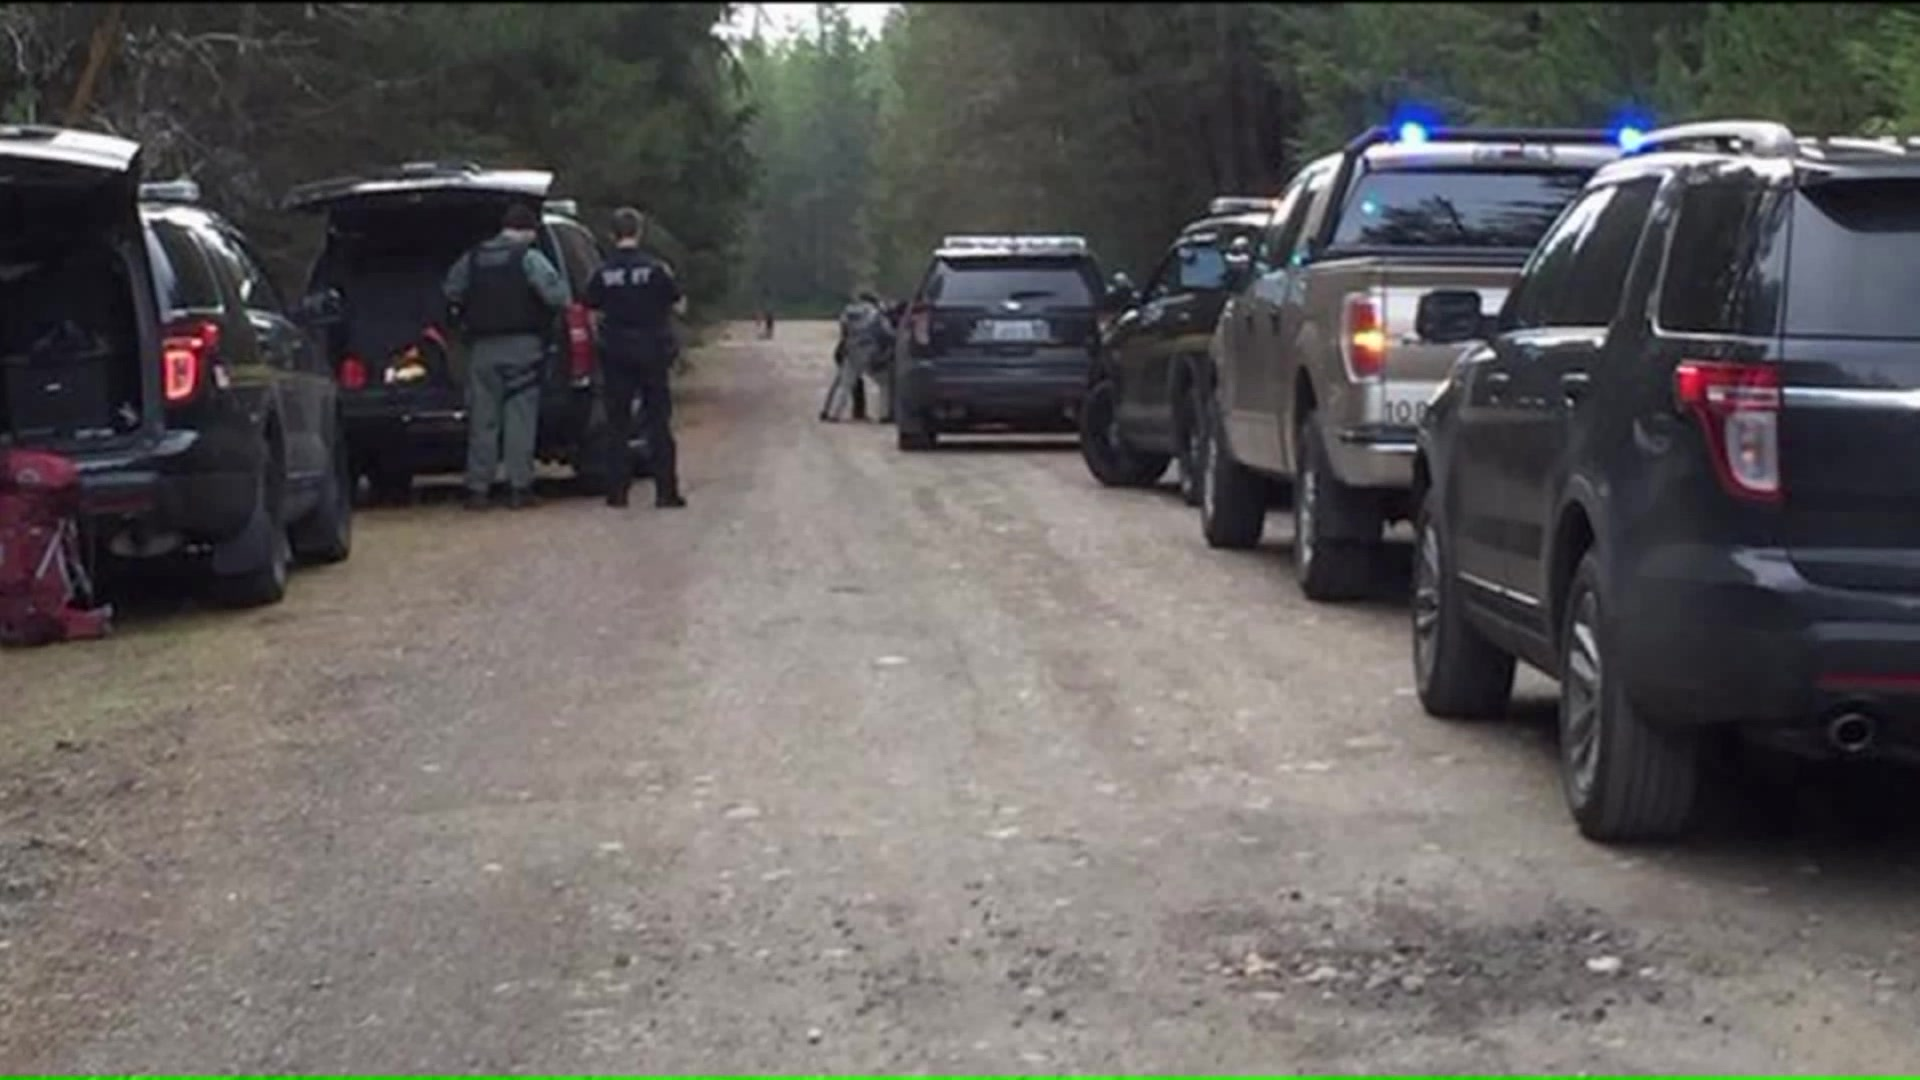 Sheriff: 5 Dead, Including Shooter, After SWAT Standoff In Washington State